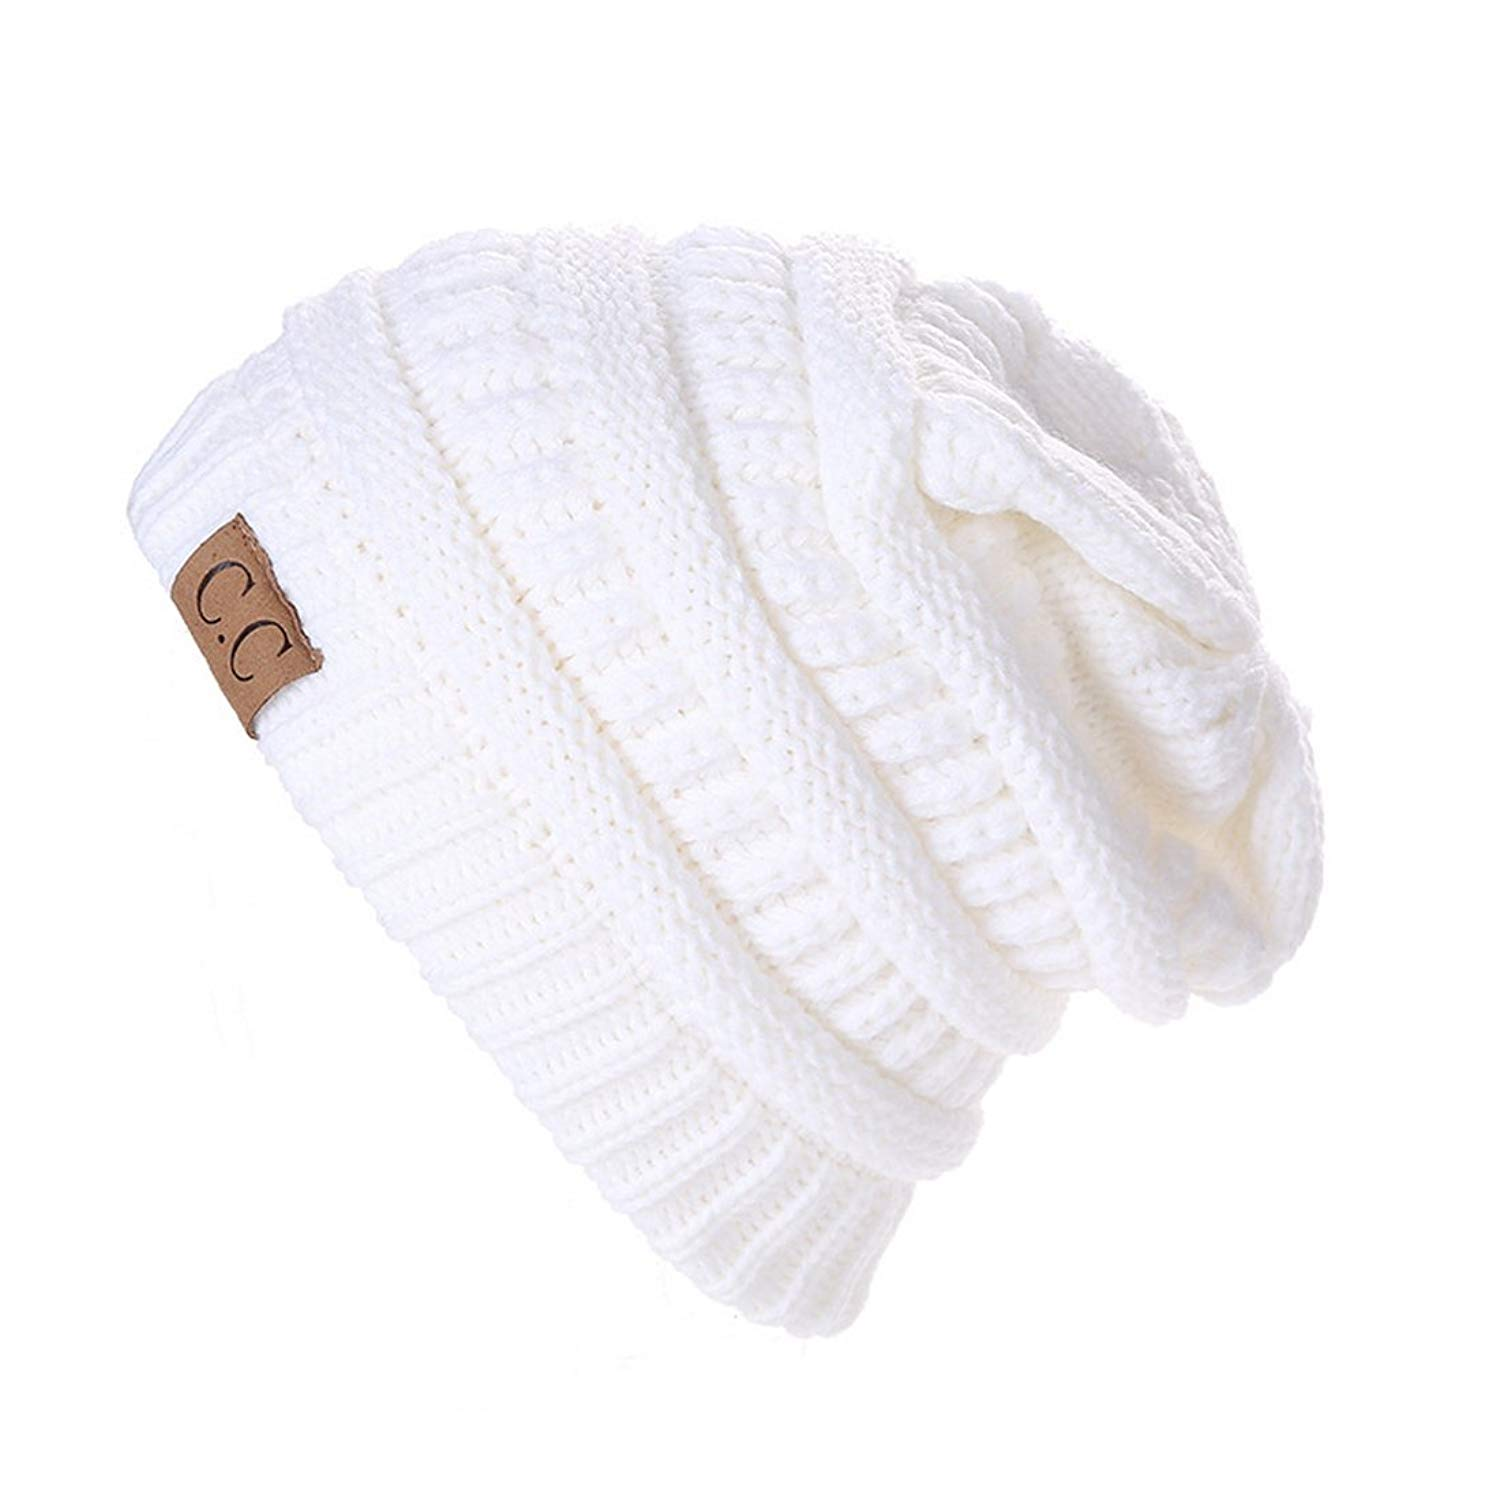 58ee0d9cf58c7 Get Quotations · King Star Mens Winter Baggy Beanie Slouchy Oversized Knit  Skull Cap Hat